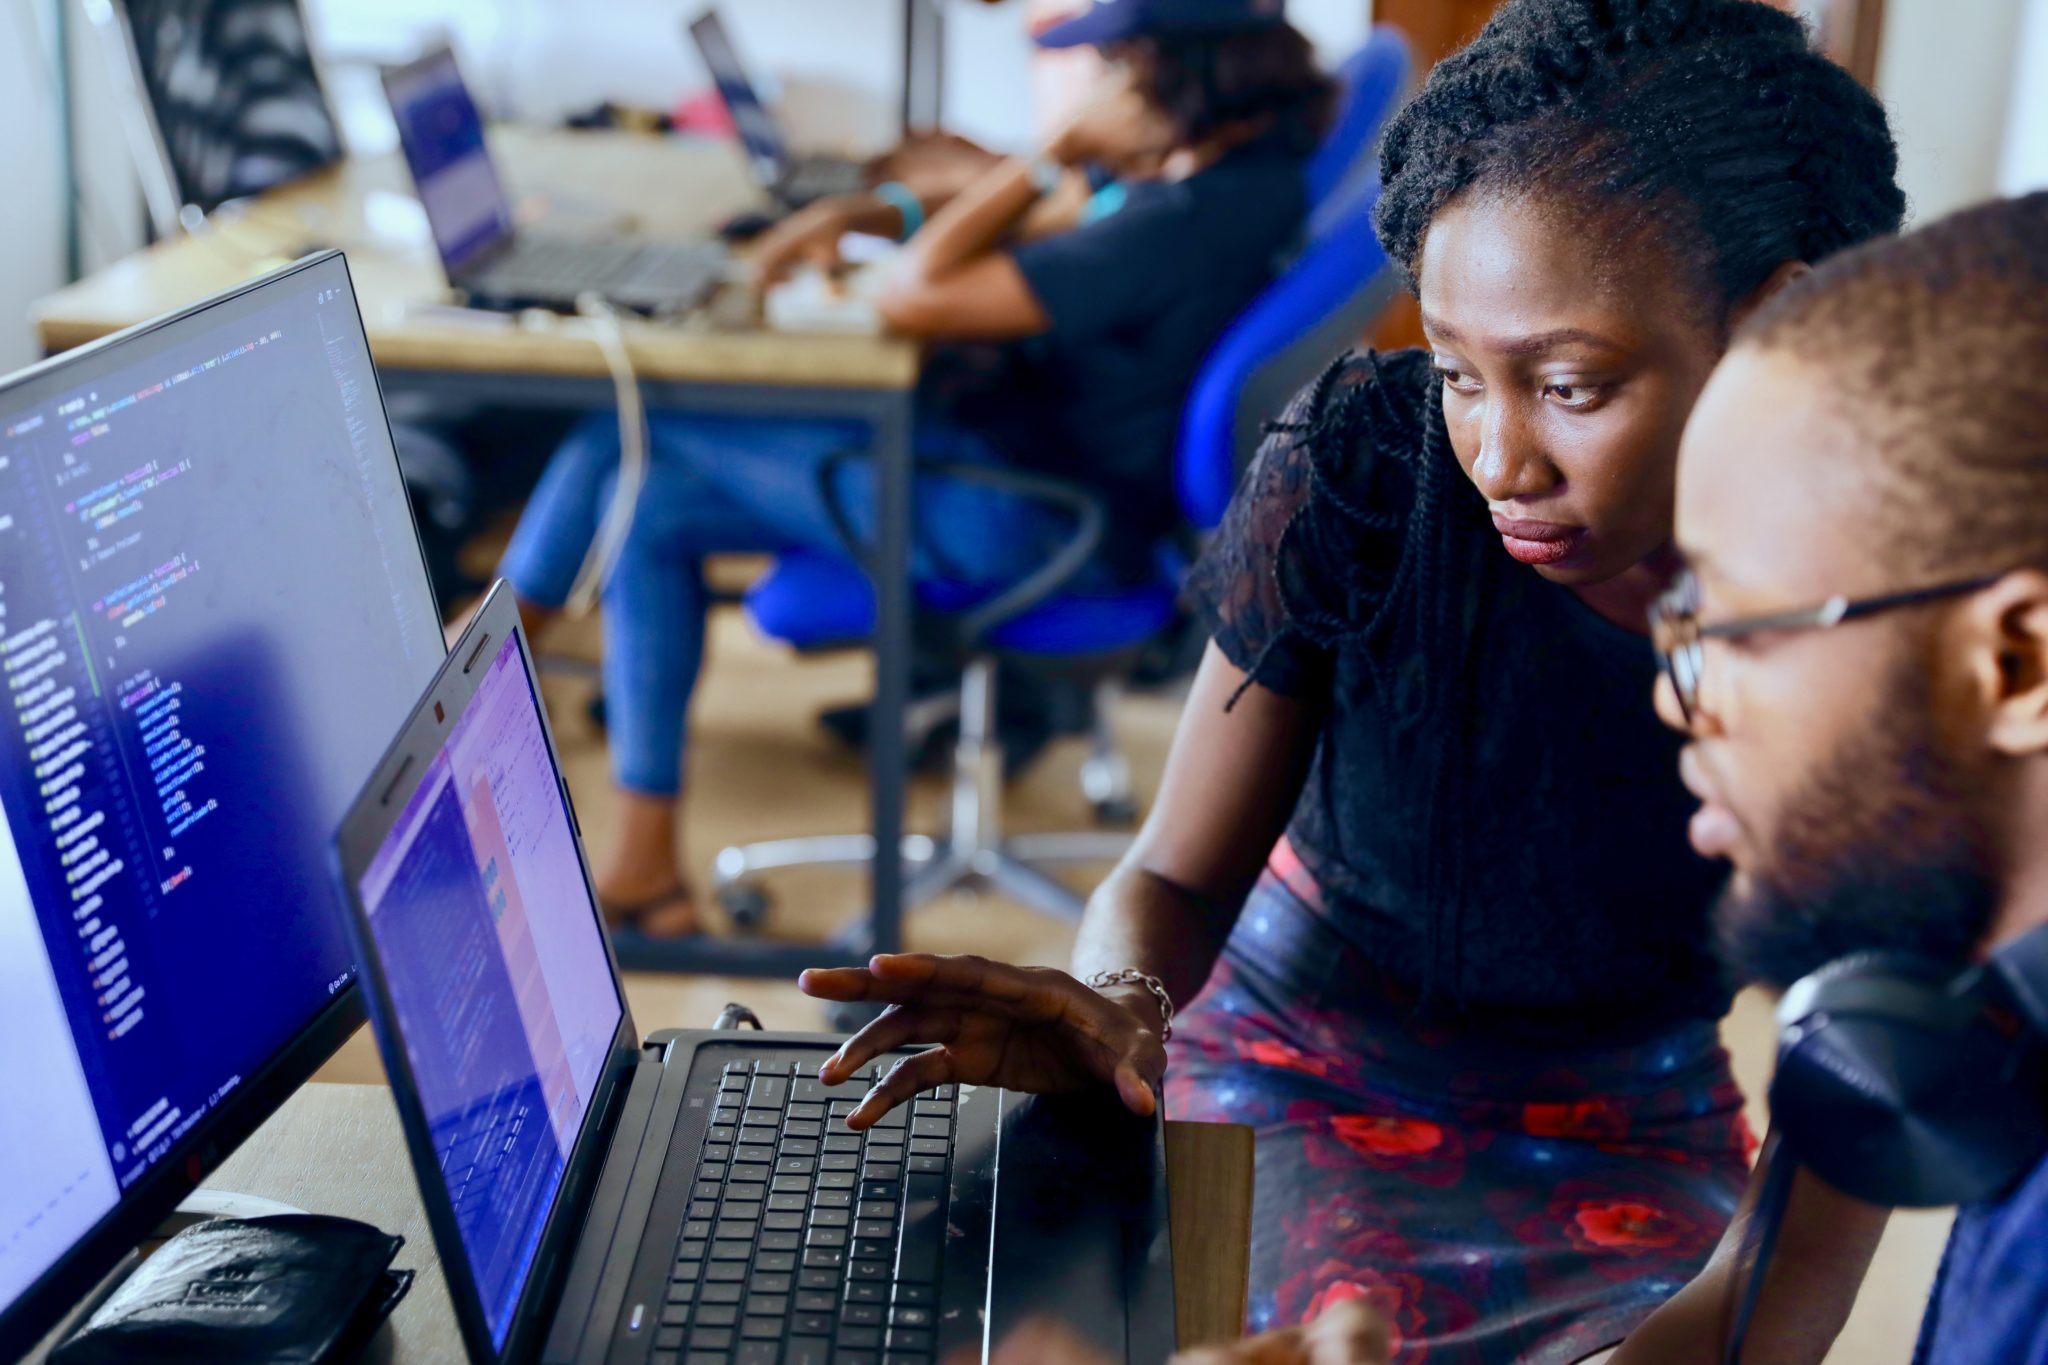 Software engineer salaries in South Africa, Programming Courses Swaziland, Online IT Courses South Africa, Programming courses South Africa,programming courses, programming courses johannesburg